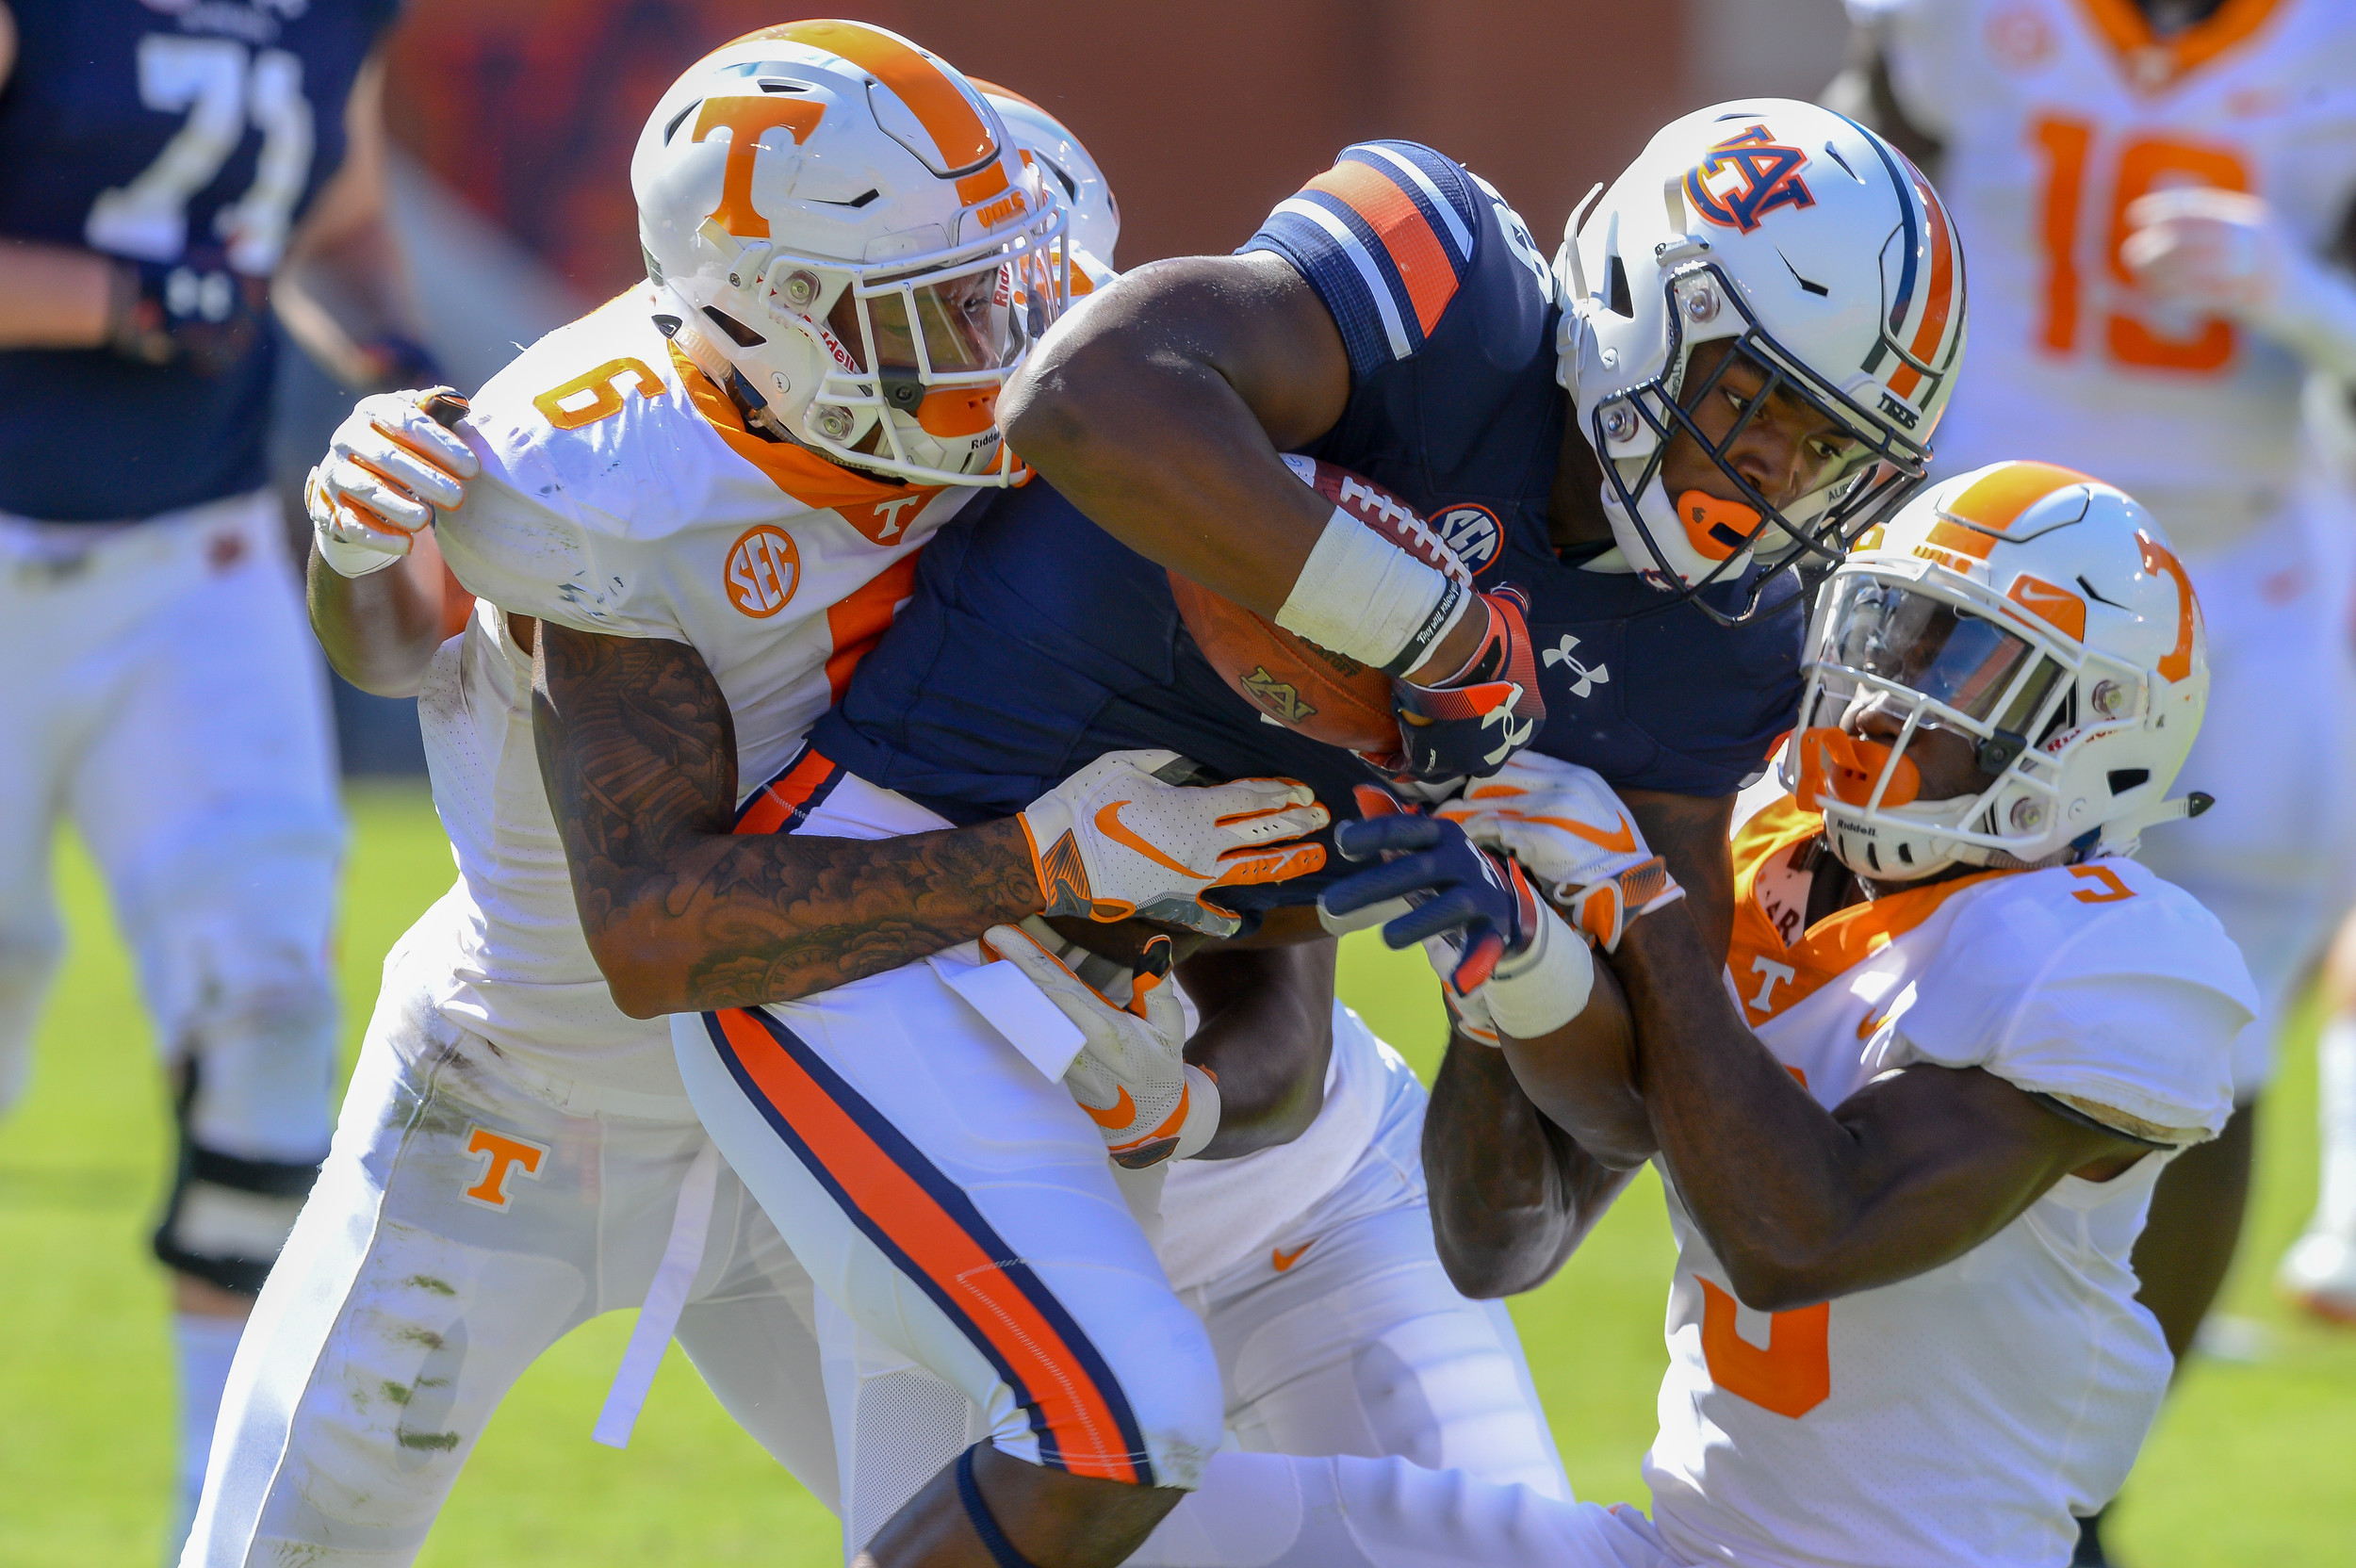 Tennessee Volunteers defensive back Alontae Taylor (6) and defensive back Marquill Osborne (3) tackle Auburn Tigers wide receiver Seth Williams (18) during the second half of Saturday's game, at Jordan-Hare Stadium in Auburn, AL. Daily Mountain Eagle -  Jeff Johnsey